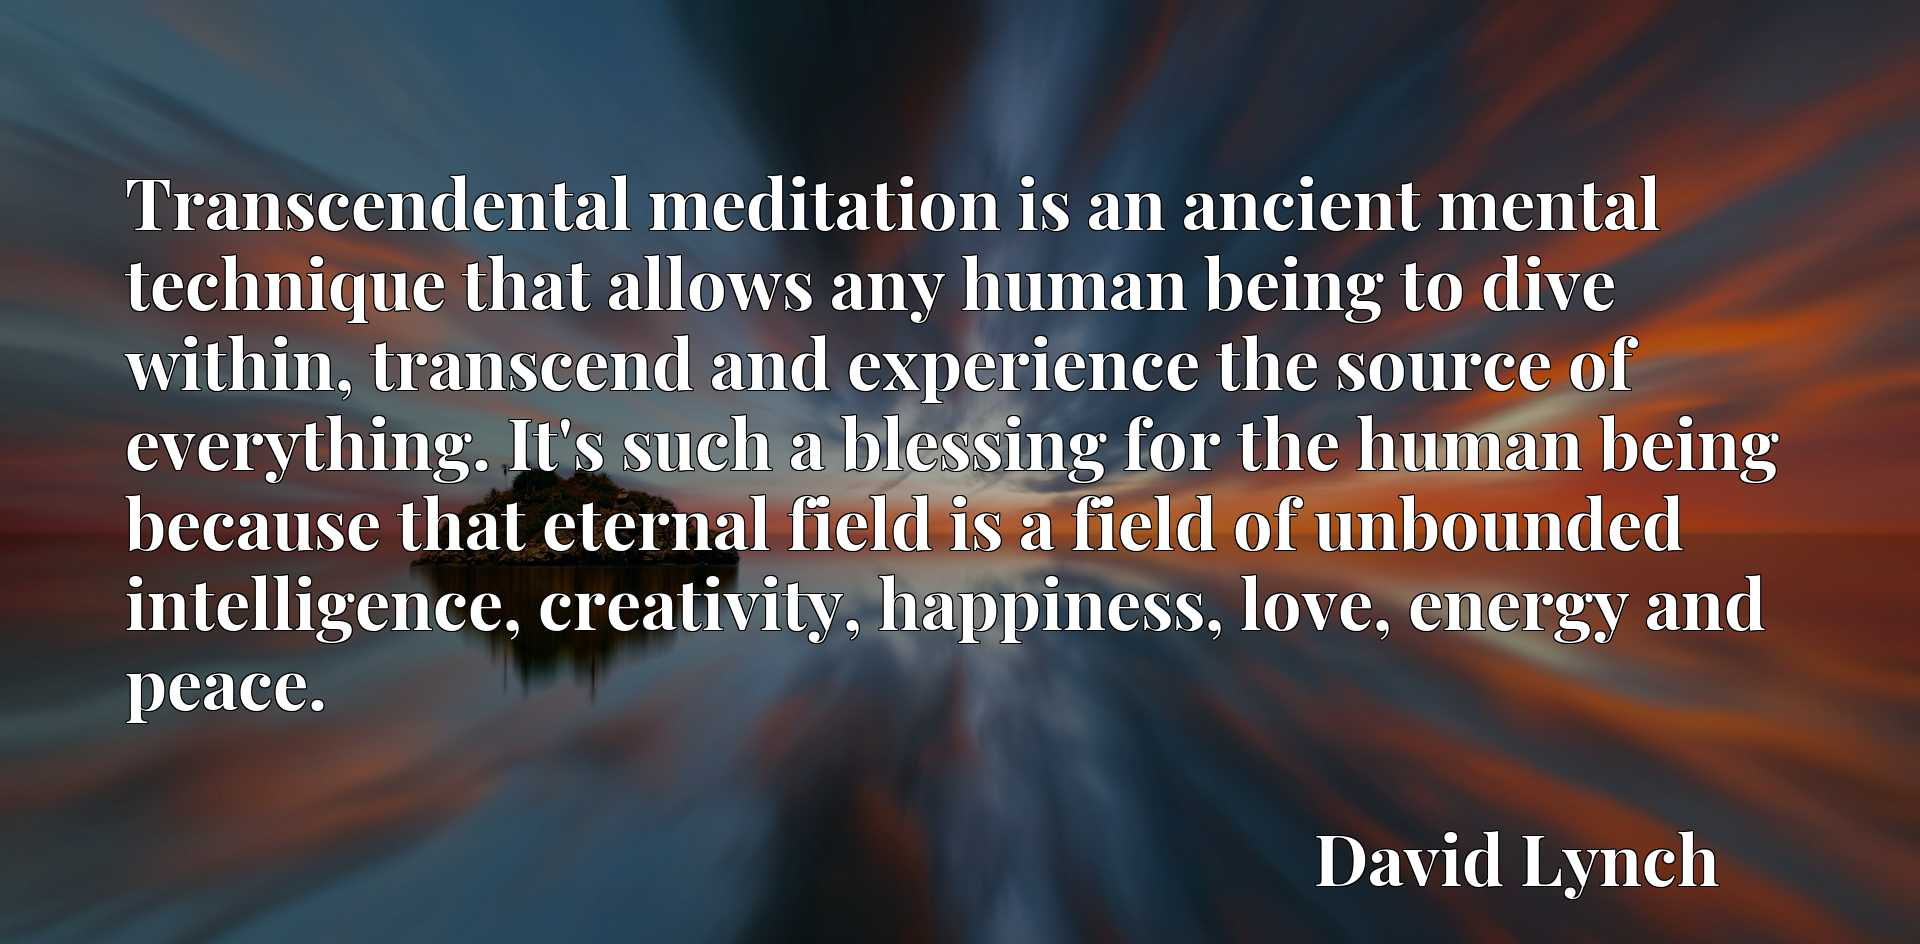 Transcendental meditation is an ancient mental technique that allows any human being to dive within, transcend and experience the source of everything. It's such a blessing for the human being because that eternal field is a field of unbounded intelligence, creativity, happiness, love, energy and peace.